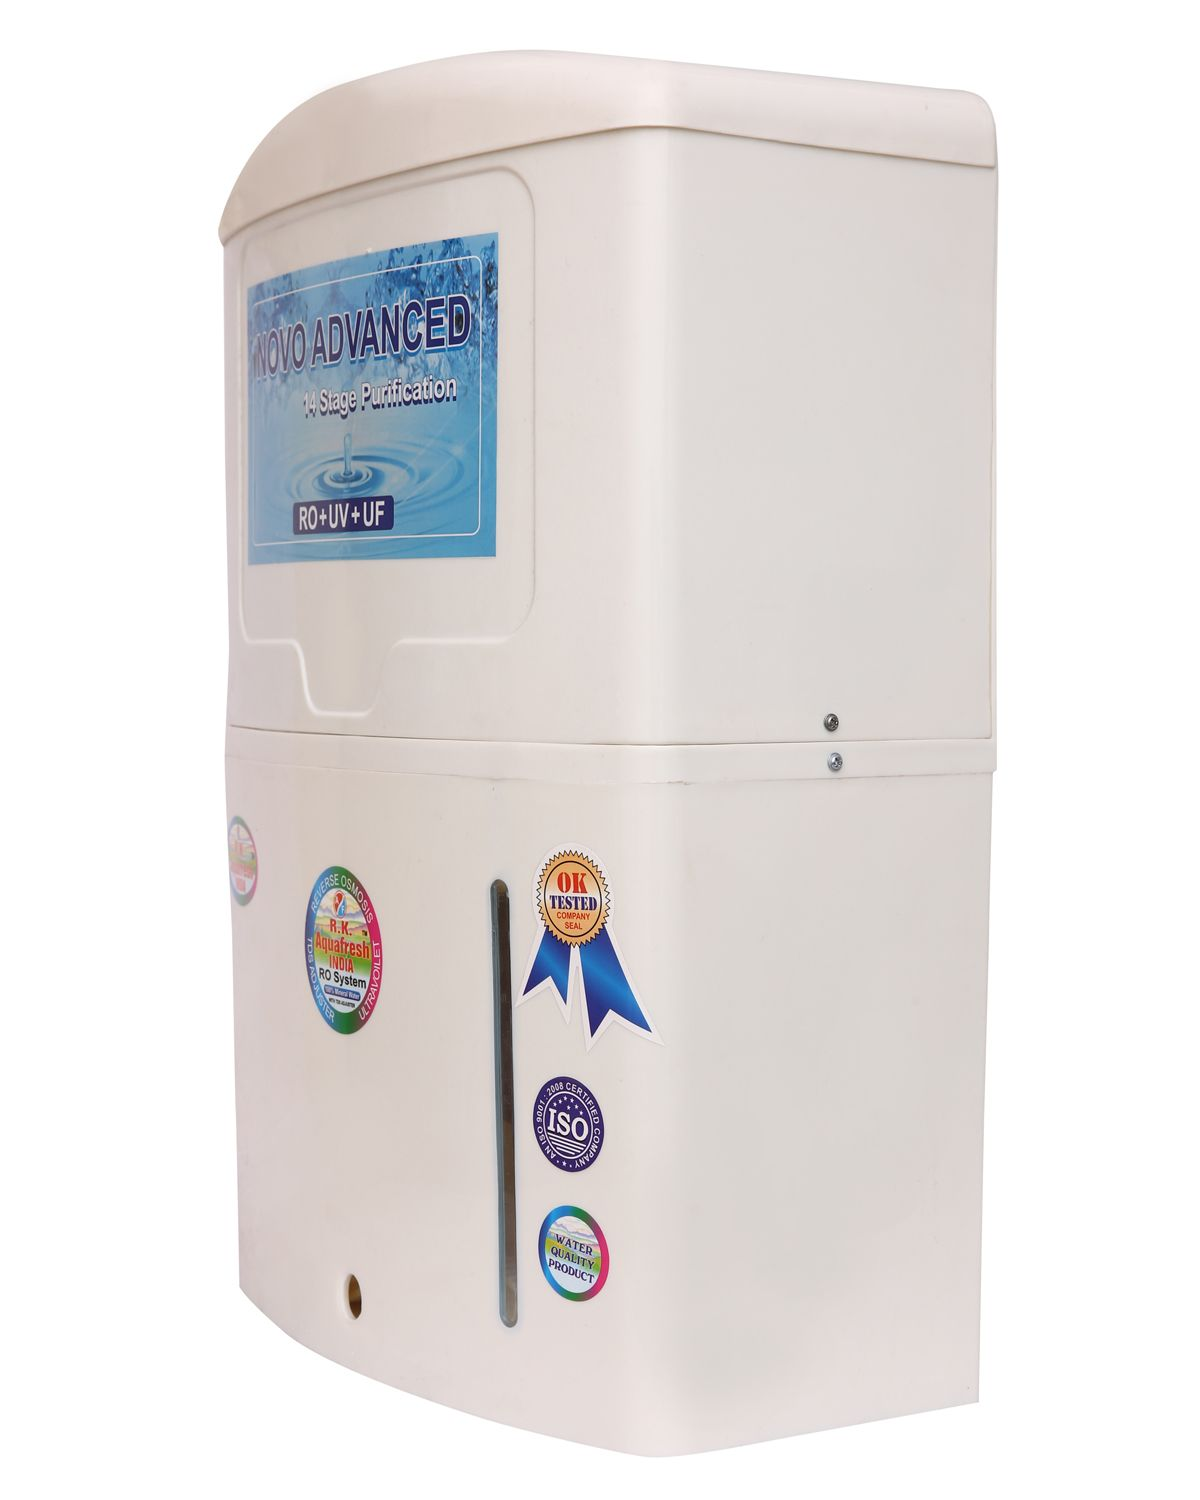 Outstanding water purifiers in India using UV. Order this